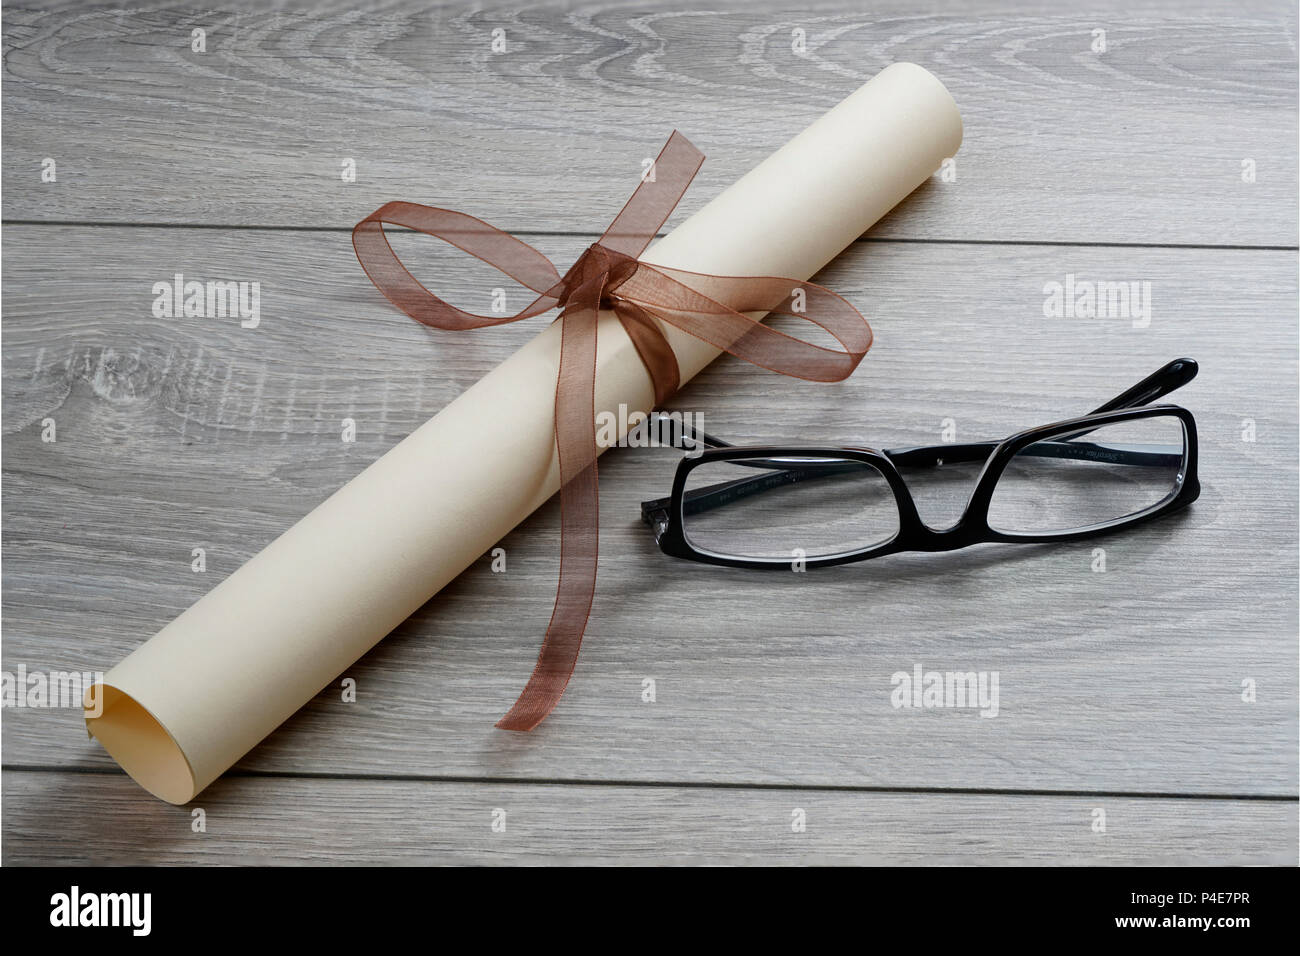 a diploma rolled up and tied with a red ribbon on the table with a pair of glasses - Stock Image